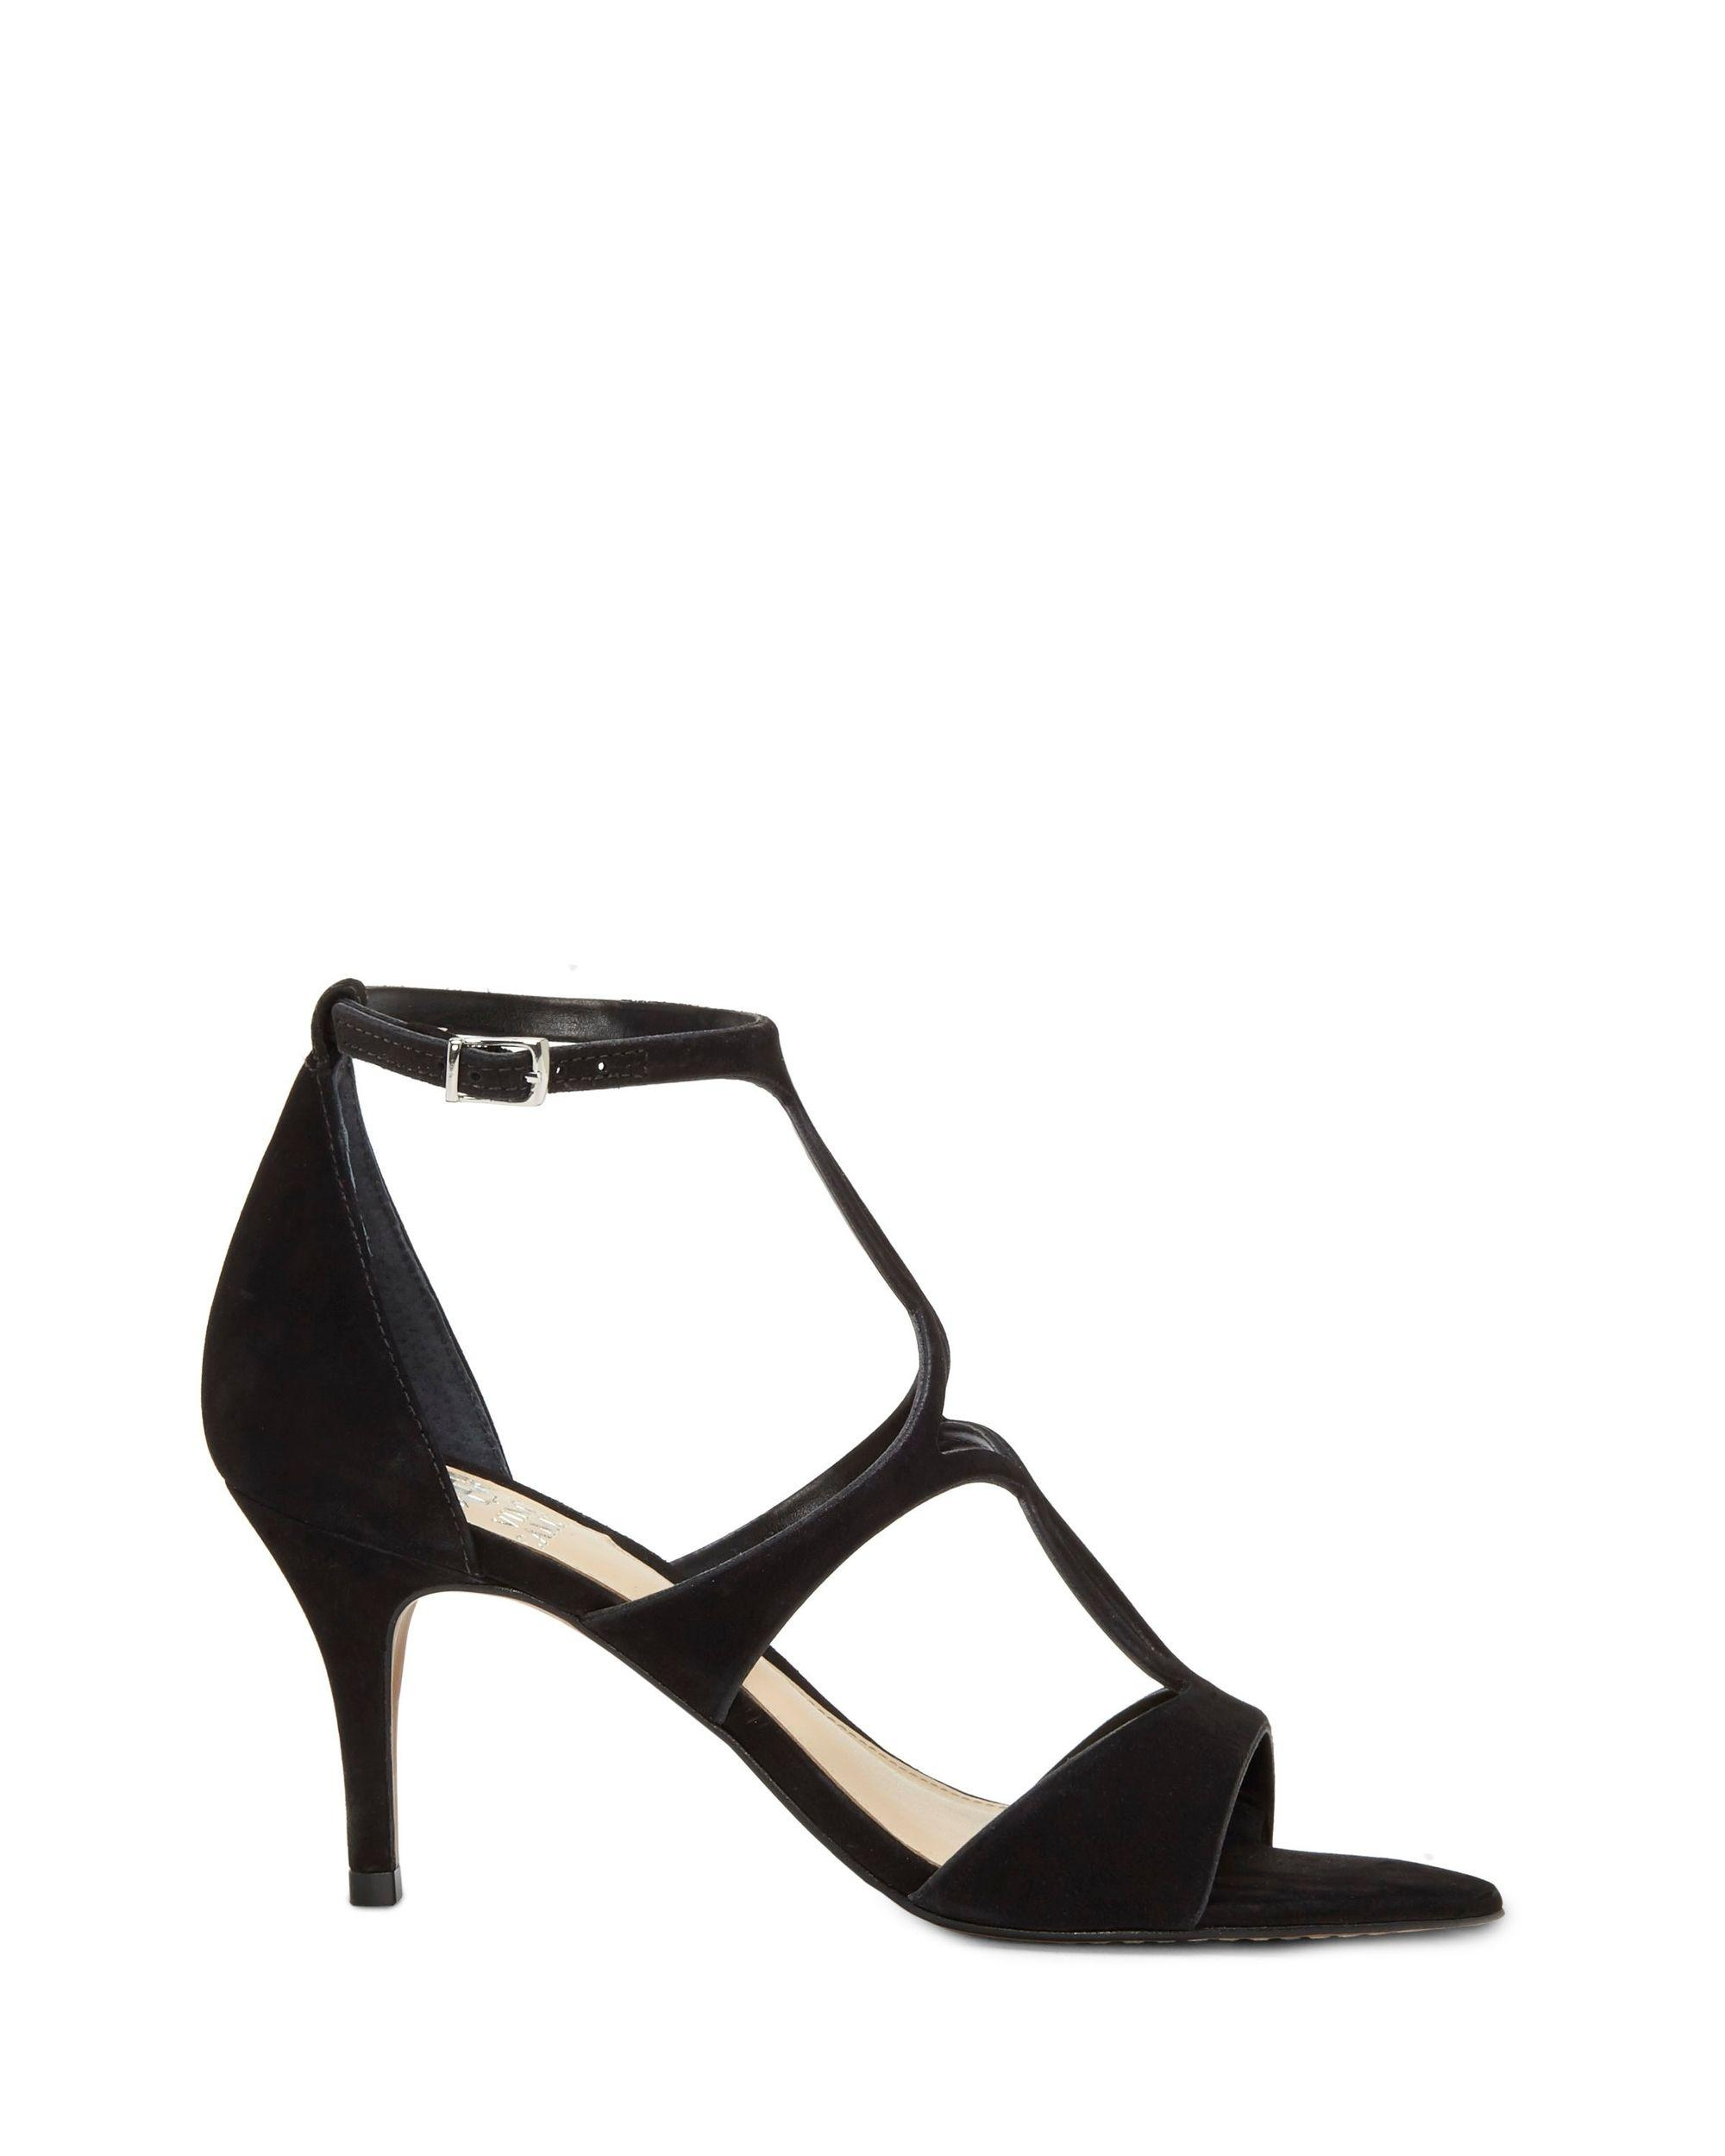 f5397597752 Lyst - Vince Camuto Payto Heeled Sandal in Black - Save 40%